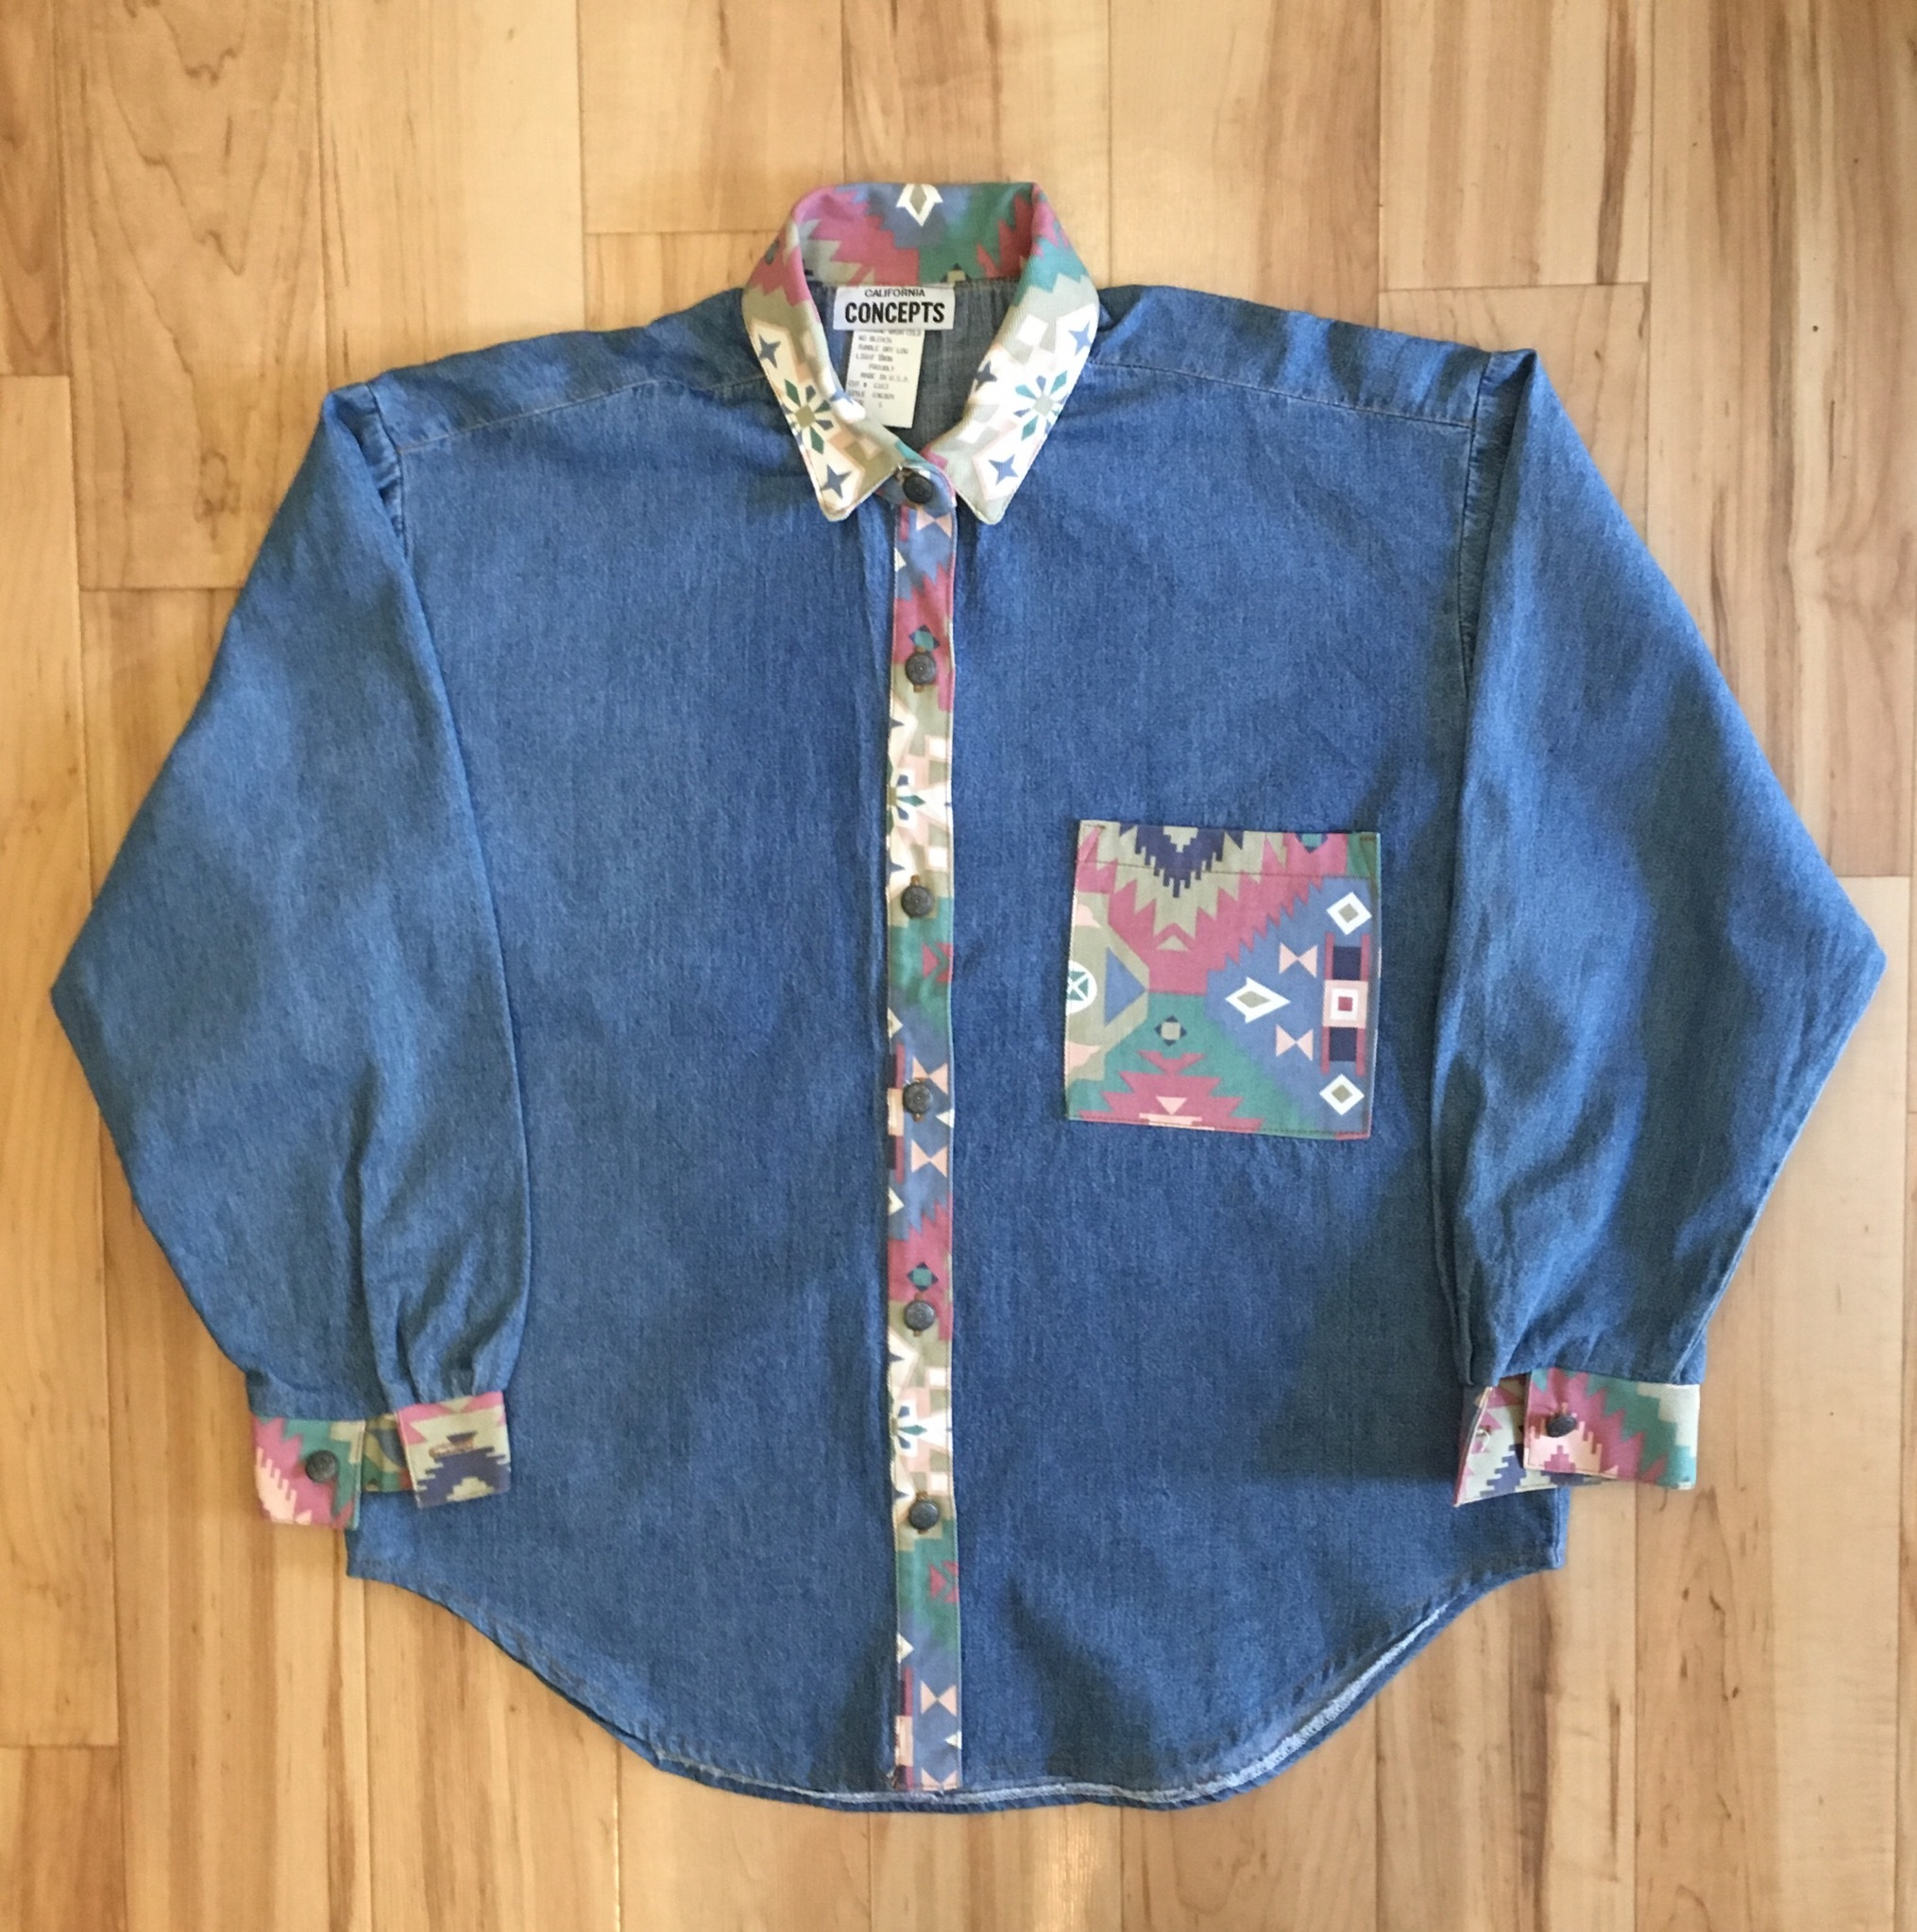 CALIFORNIA CONCEPTS Denim Long Sleeve Shirts